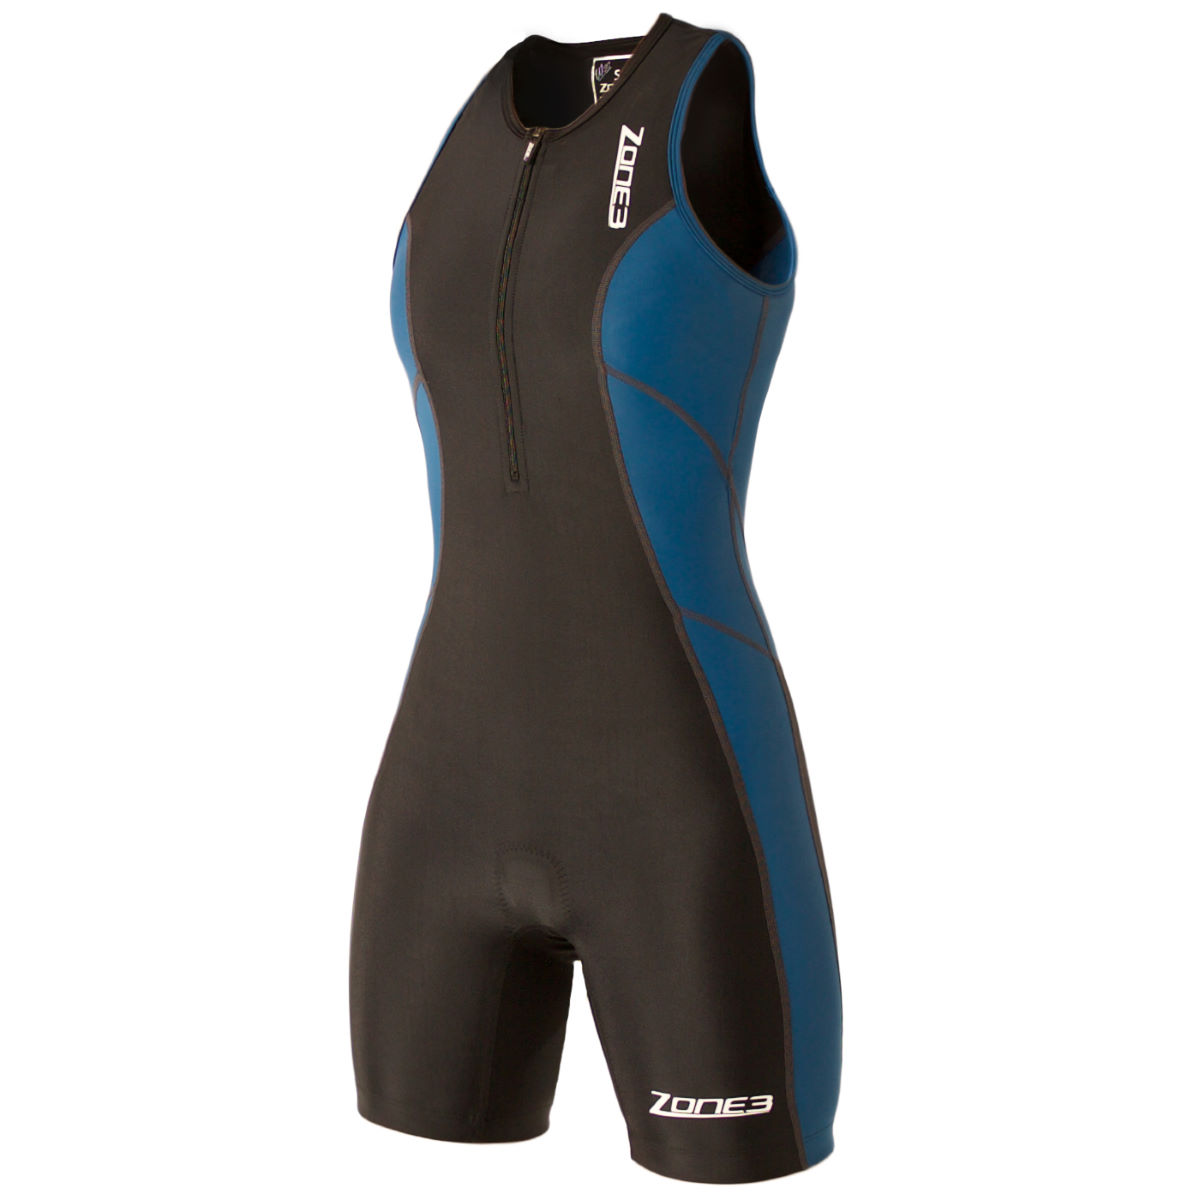 Zone3 Women's Wiggle Exclusive Activate Tri Suit